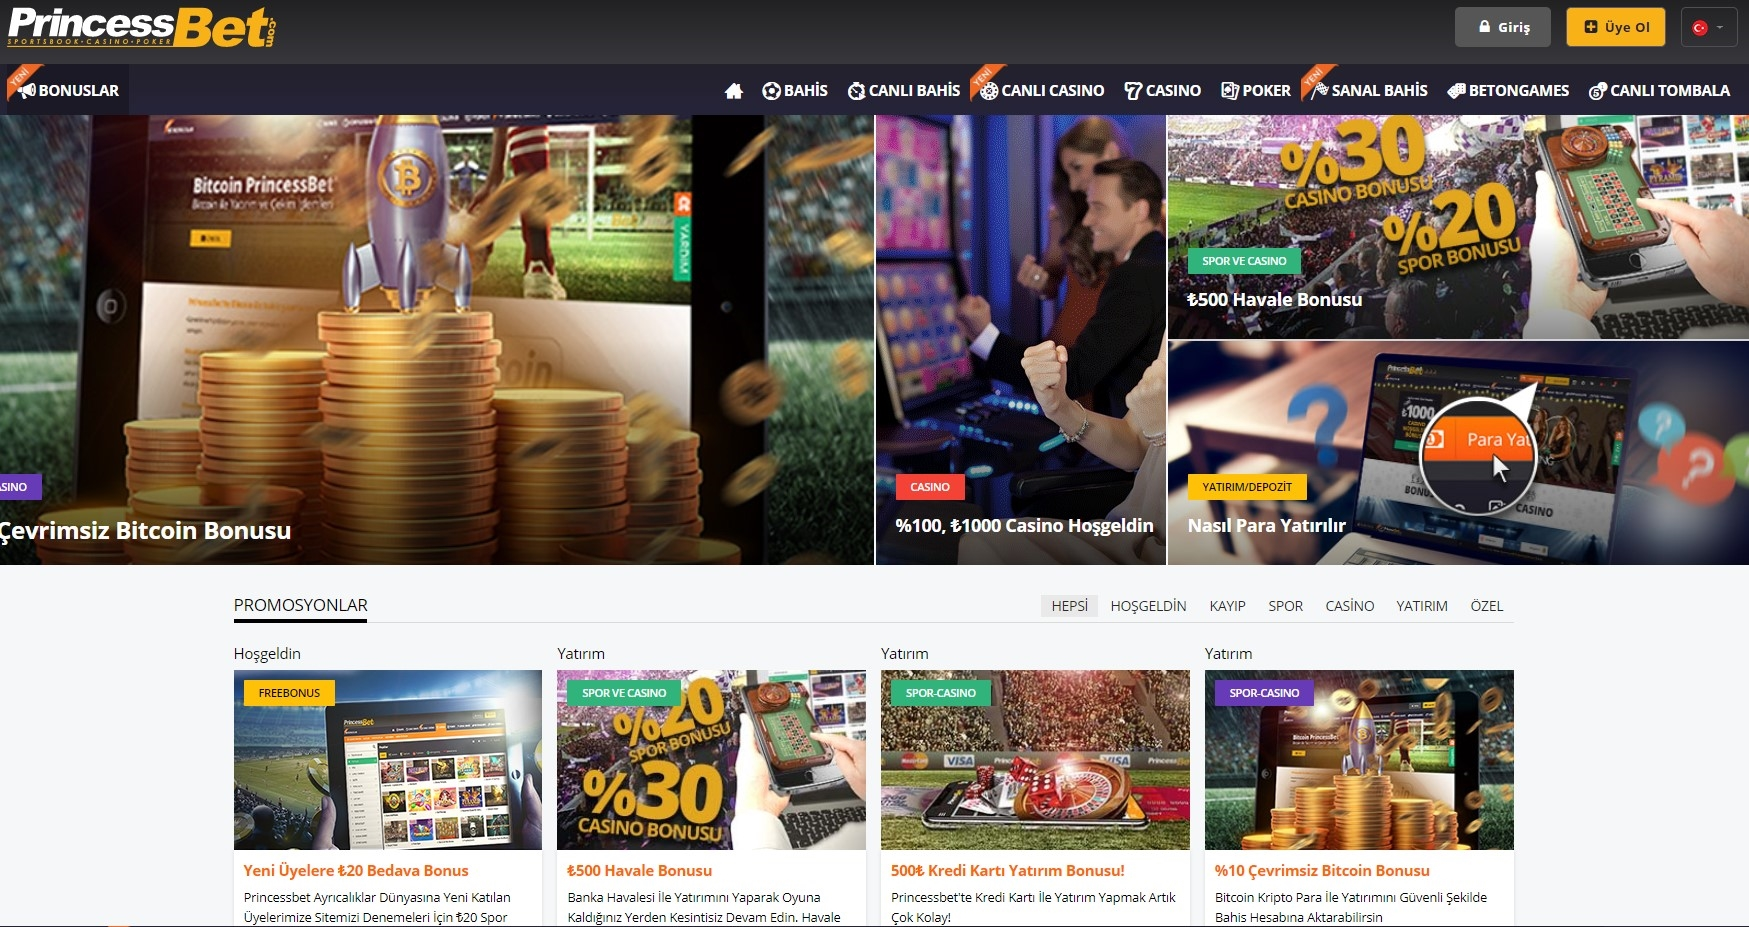 EUR 835 Daily freeroll slot tournament at Mansion Casino